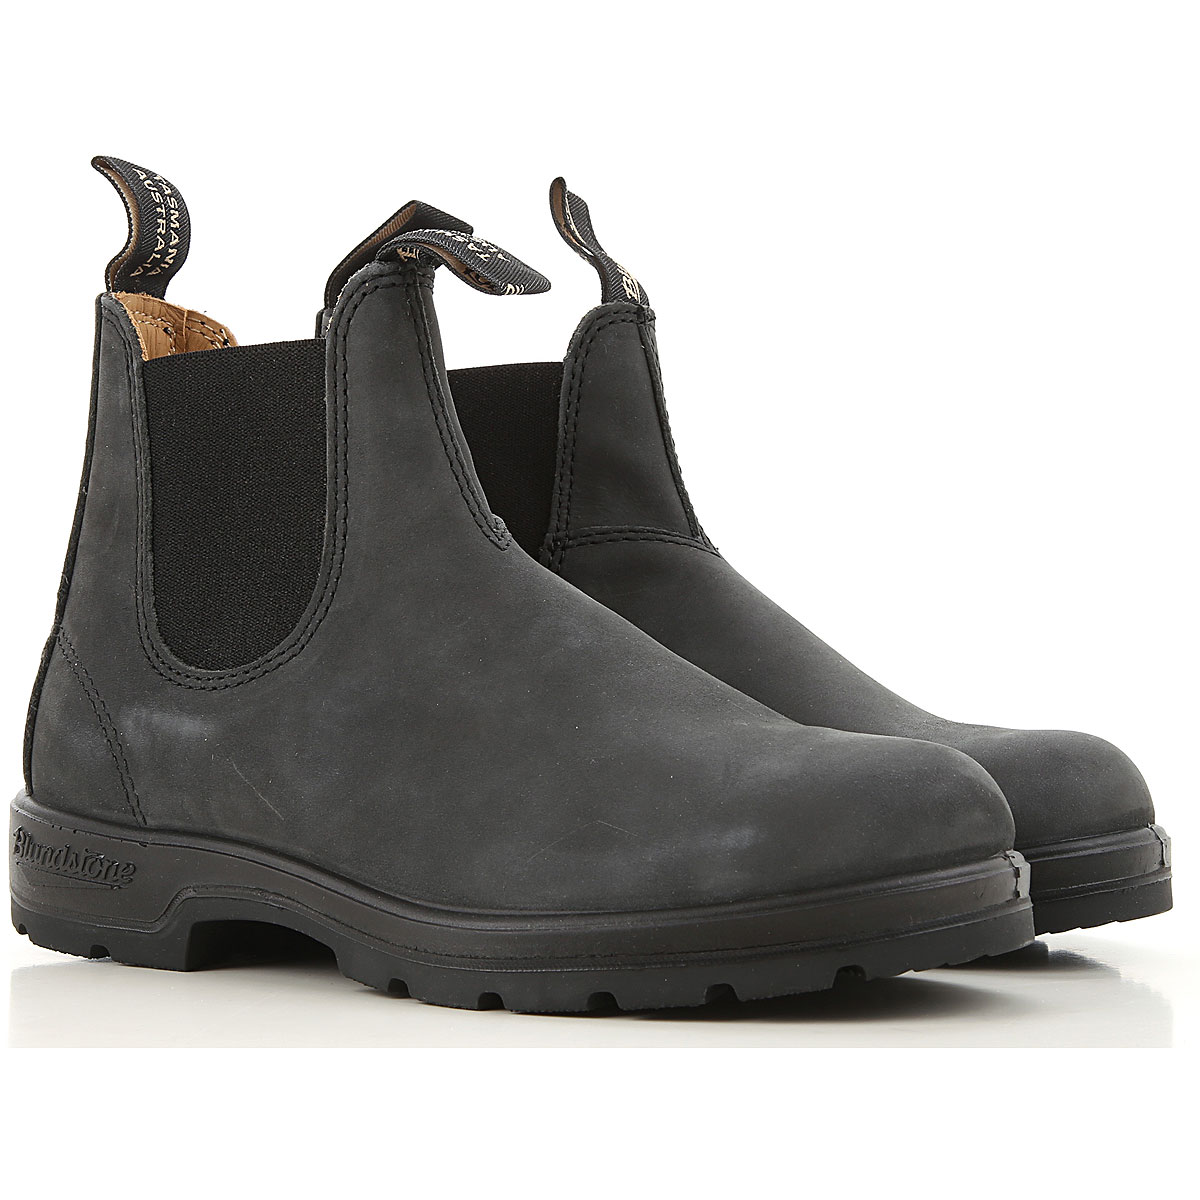 Blundstone Chelsea Boots for Women On Sale, Grey, Suede leather, 2019, AU/UK 7 - US 10 AU/UK 2 - US 5 AU/UK 3 - US 6